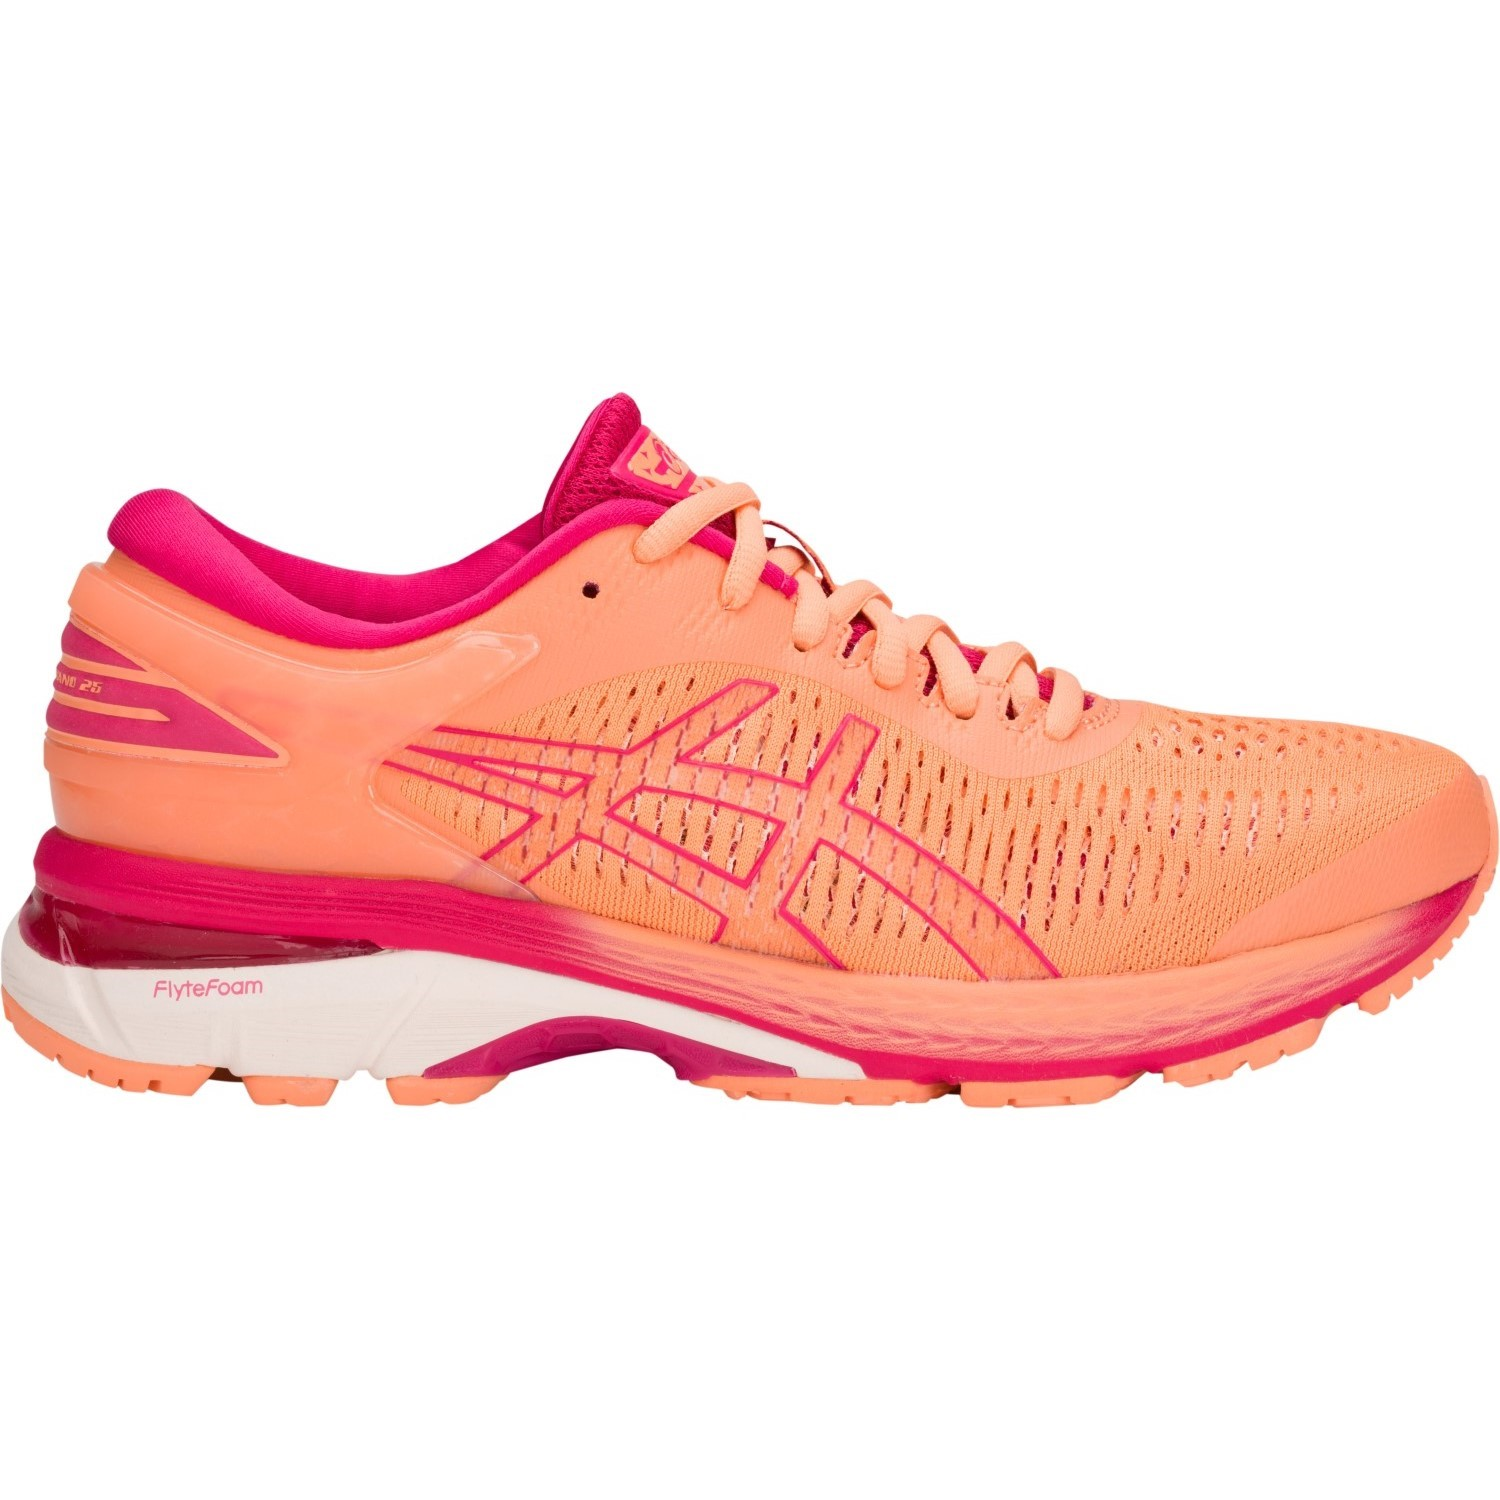 7ea94caeb23 Asics Gel Kayano 25 - Womens Running Shoes - Mojave/White/Pink ...